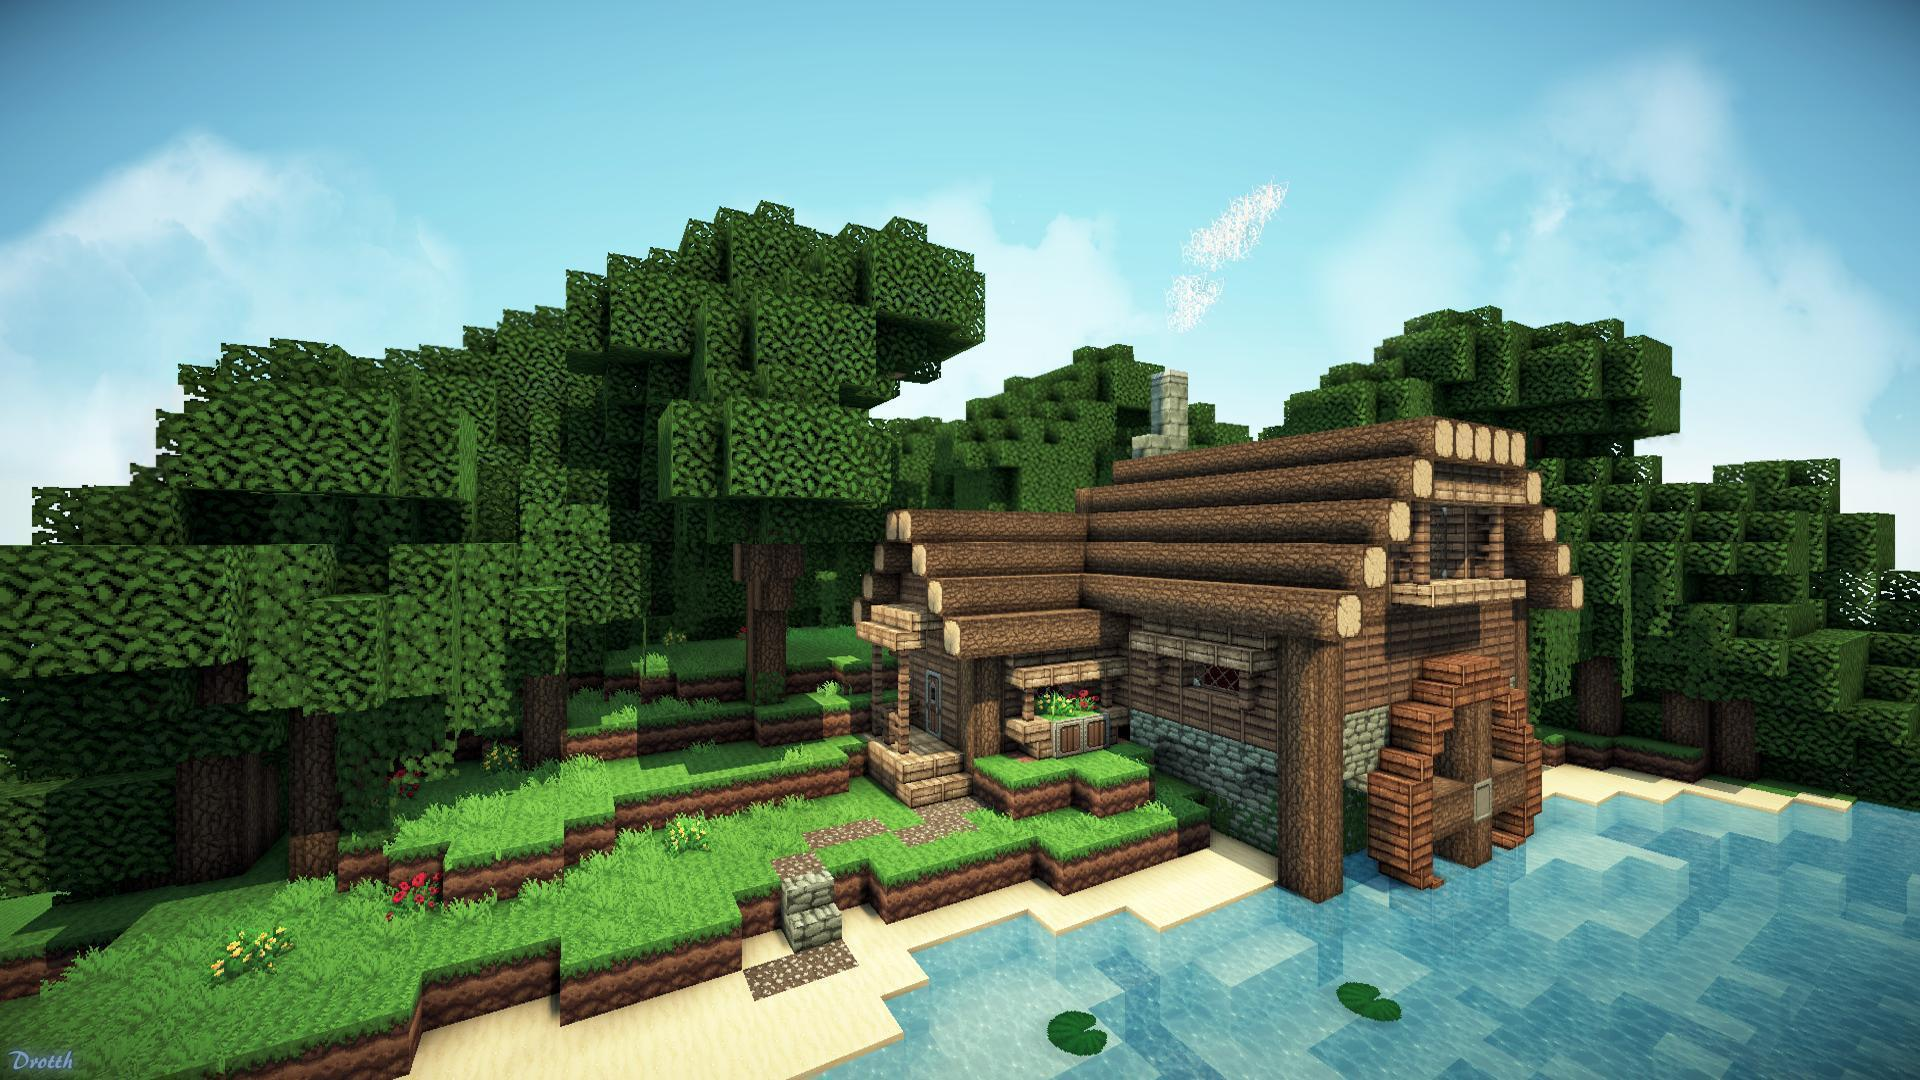 Minecraft Log Cabin ~ Epic minecraft backgrounds wallpaper cave